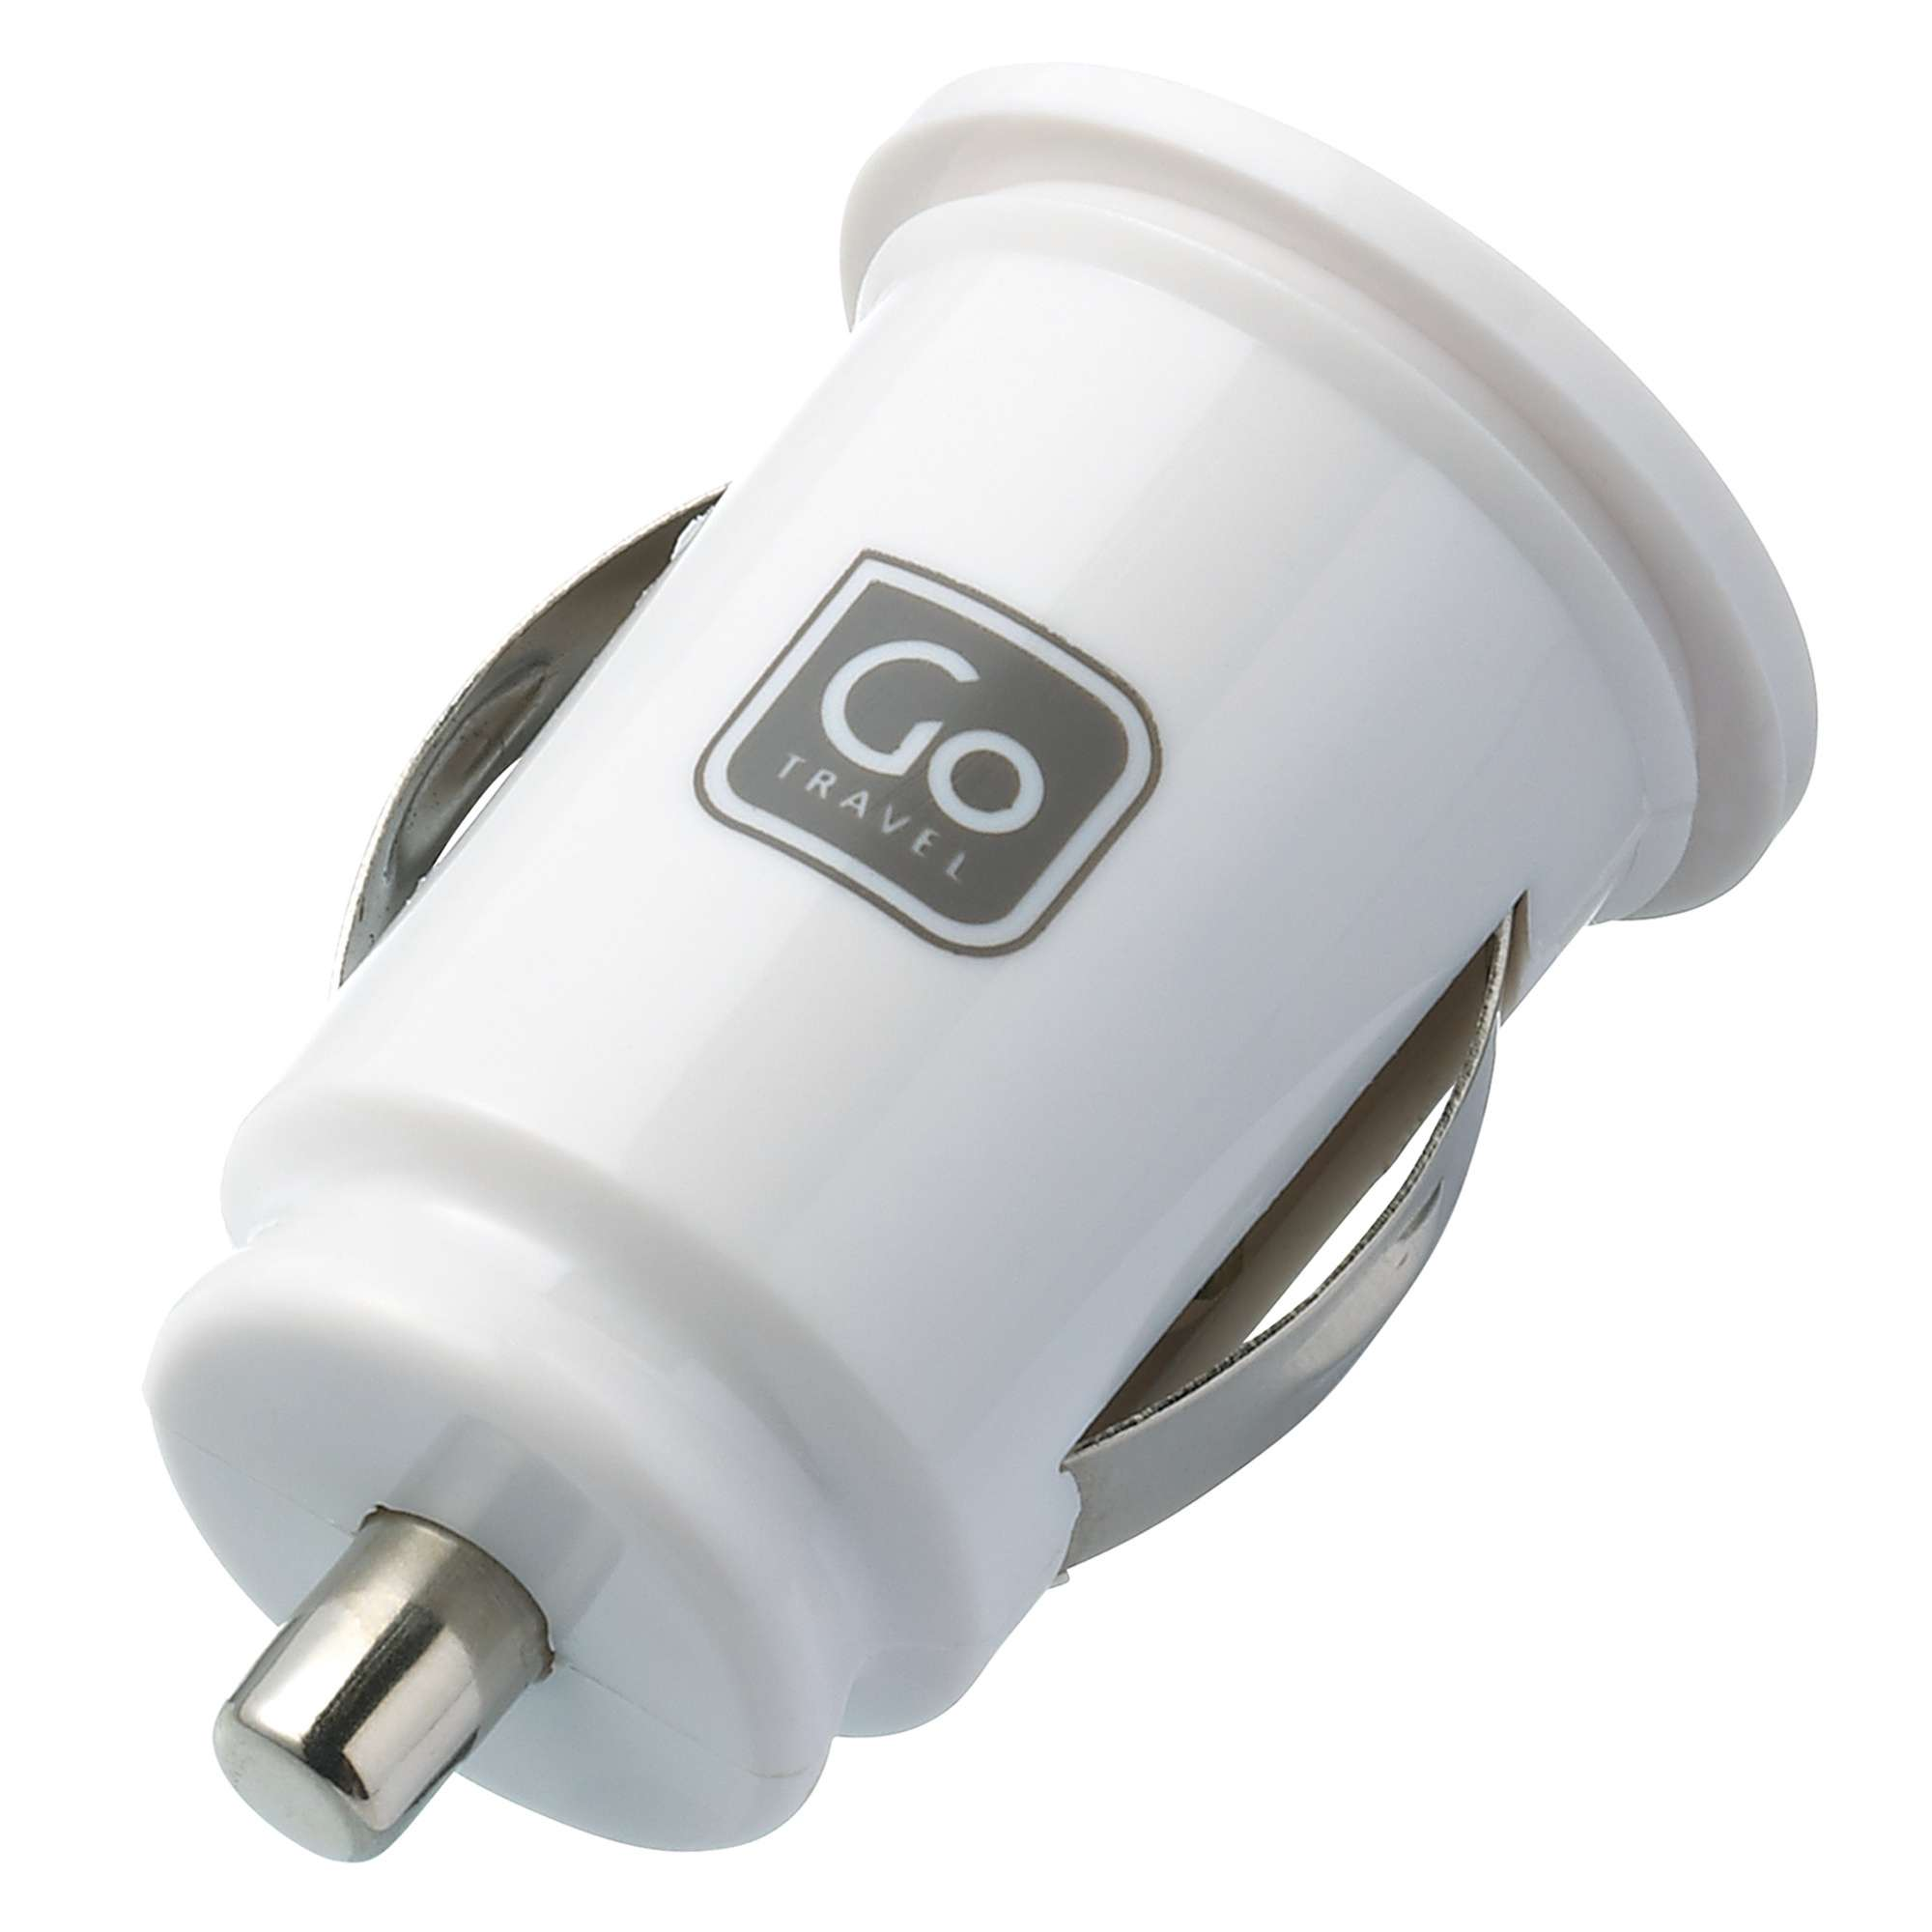 DESIGN GO USB Double In-Car Charger